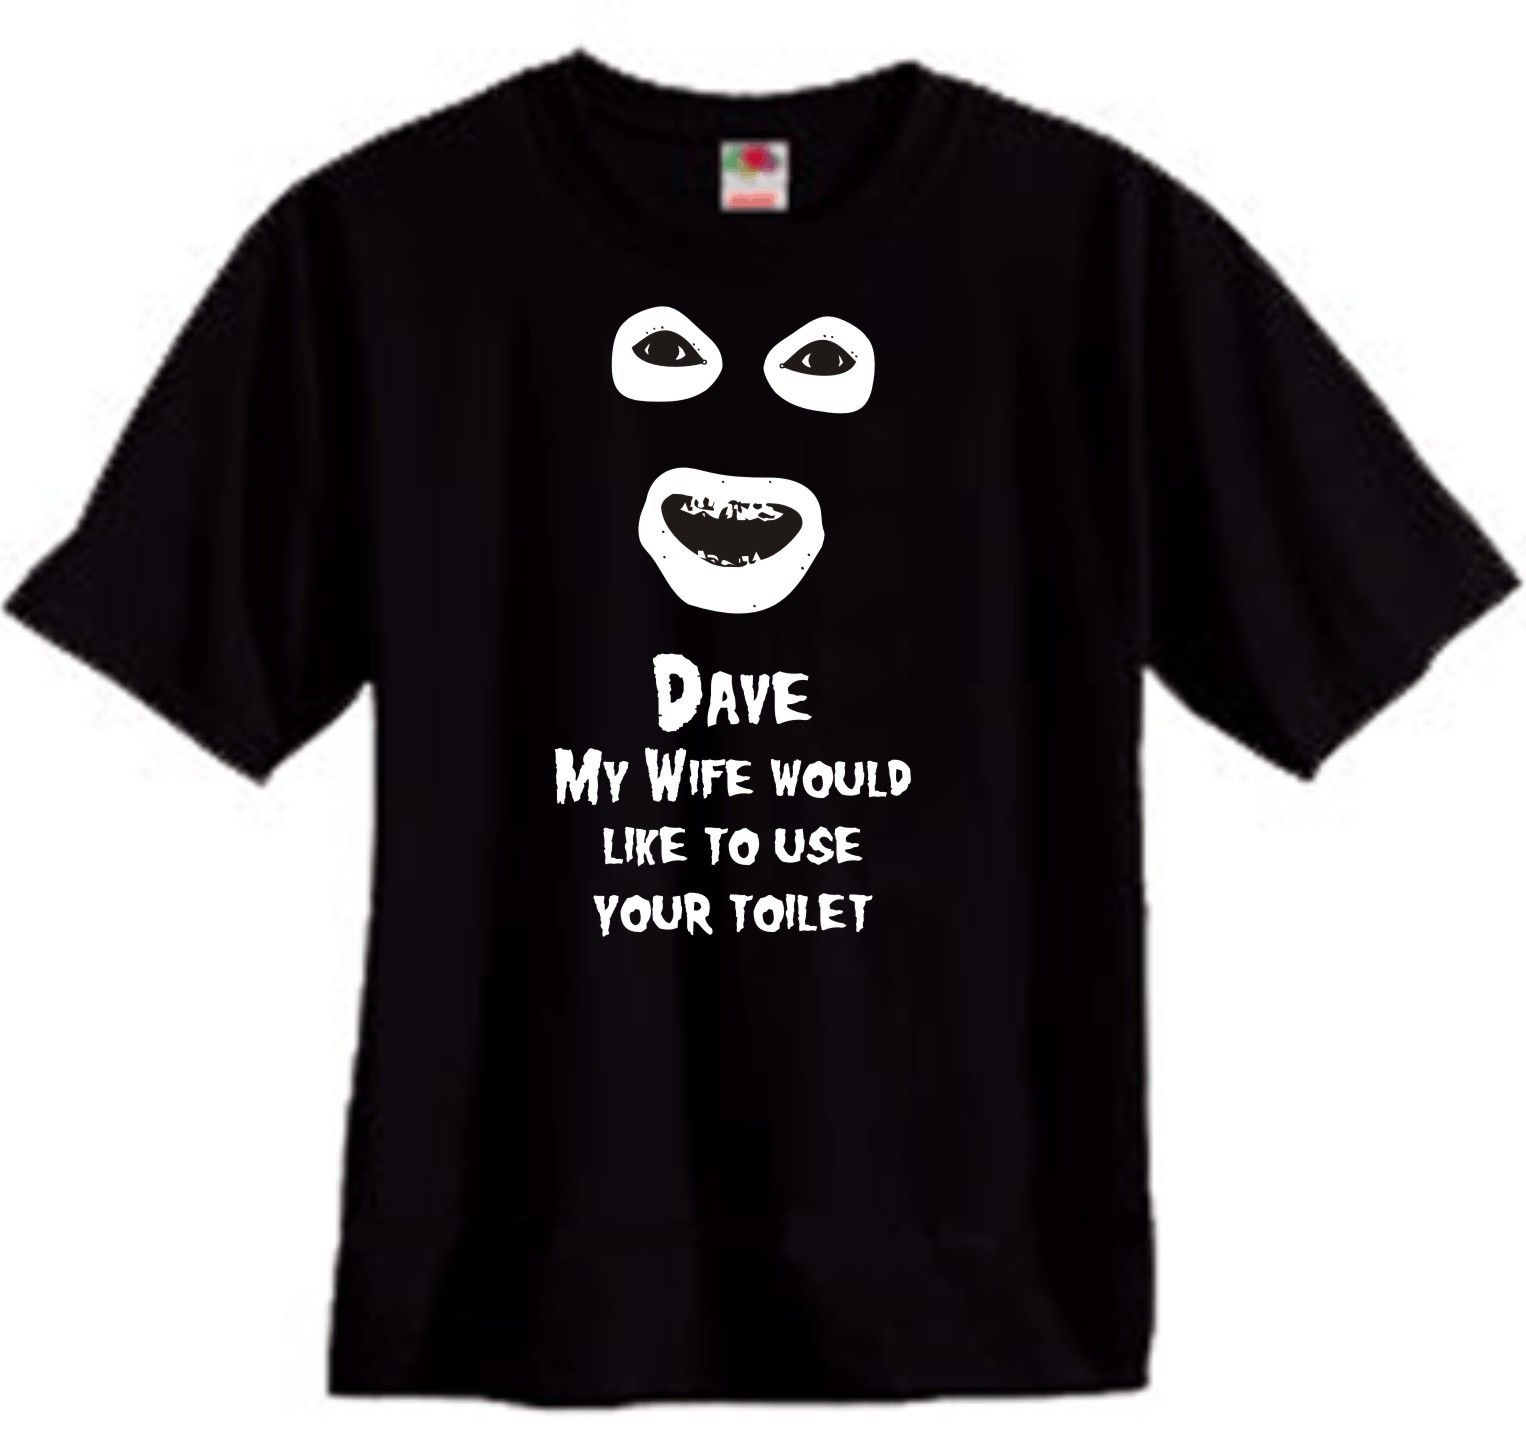 Dave my wife would like to use your toilet